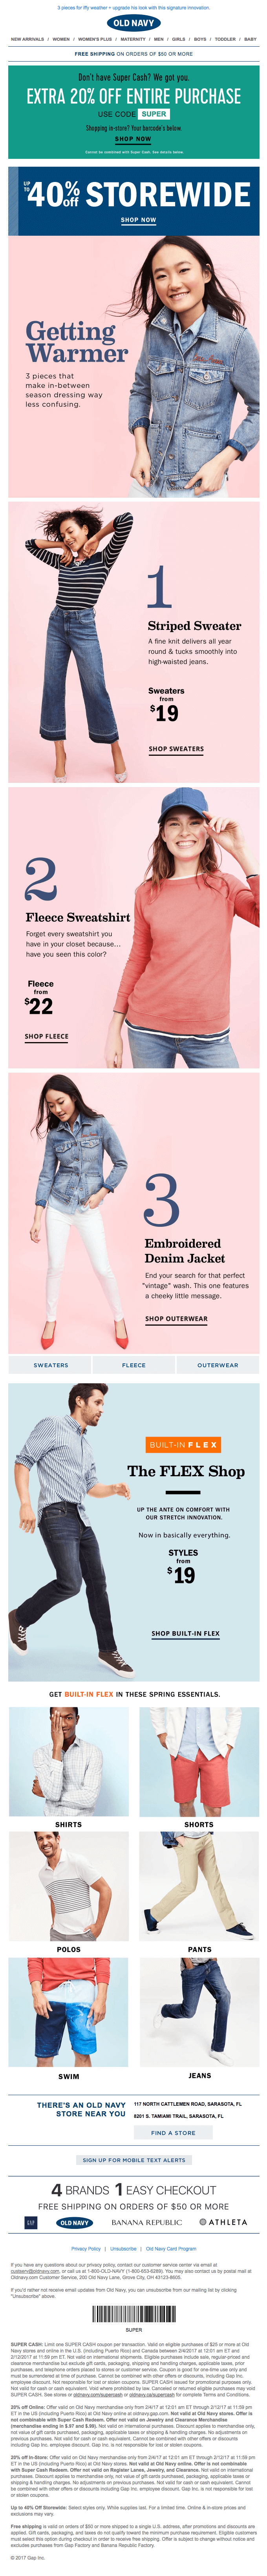 old navy email